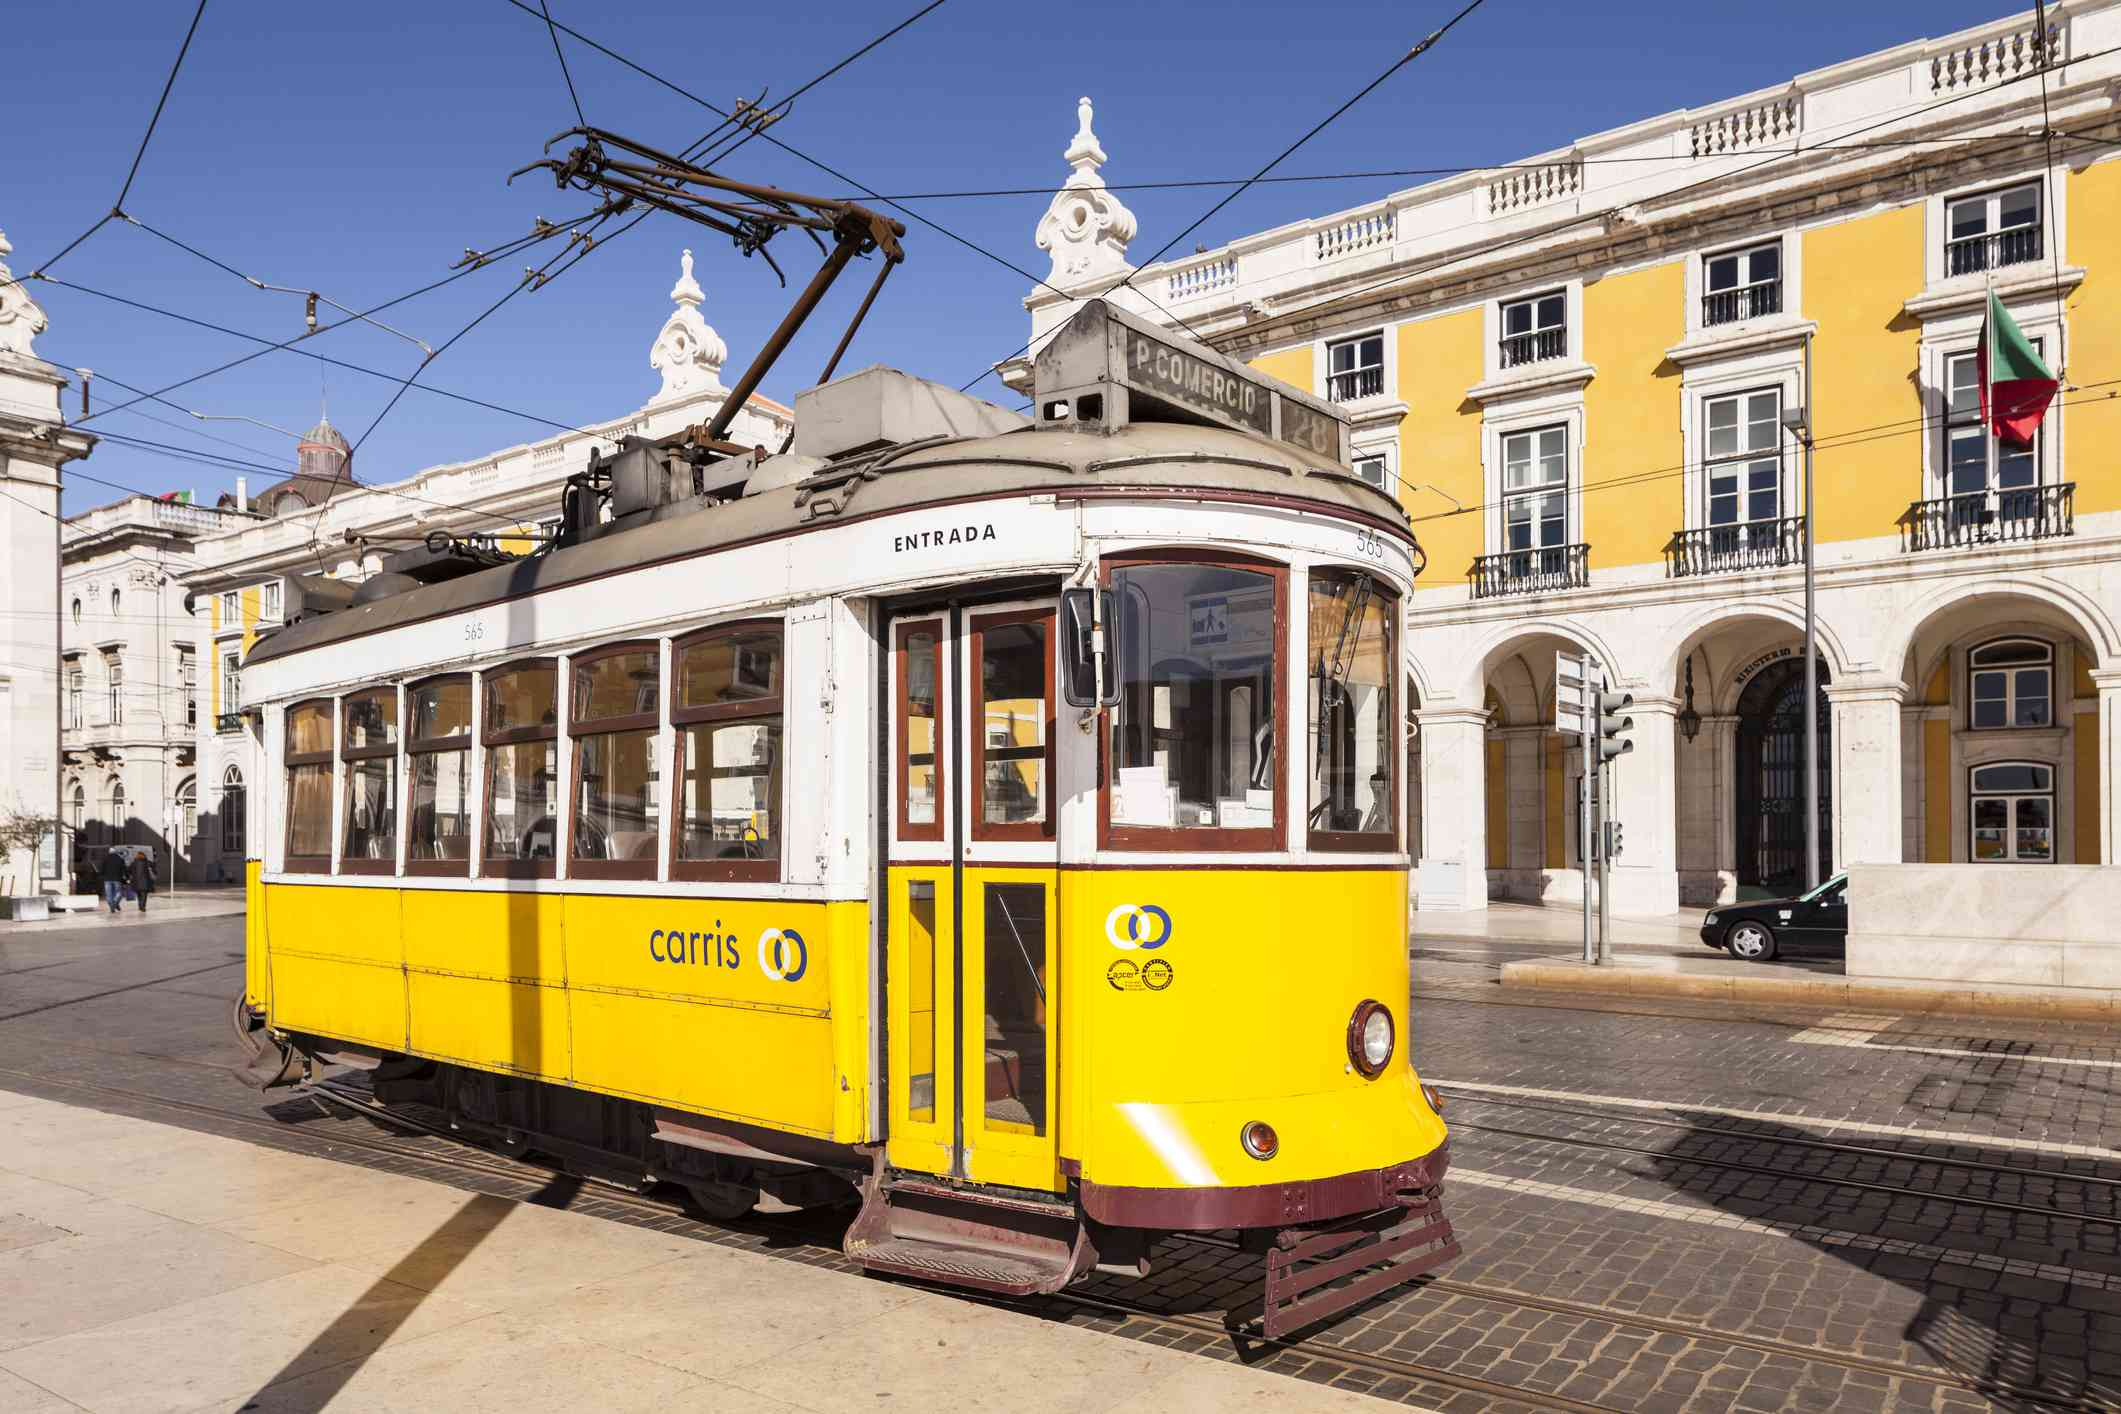 The famous Tram 28 in Lisbon, Portugal